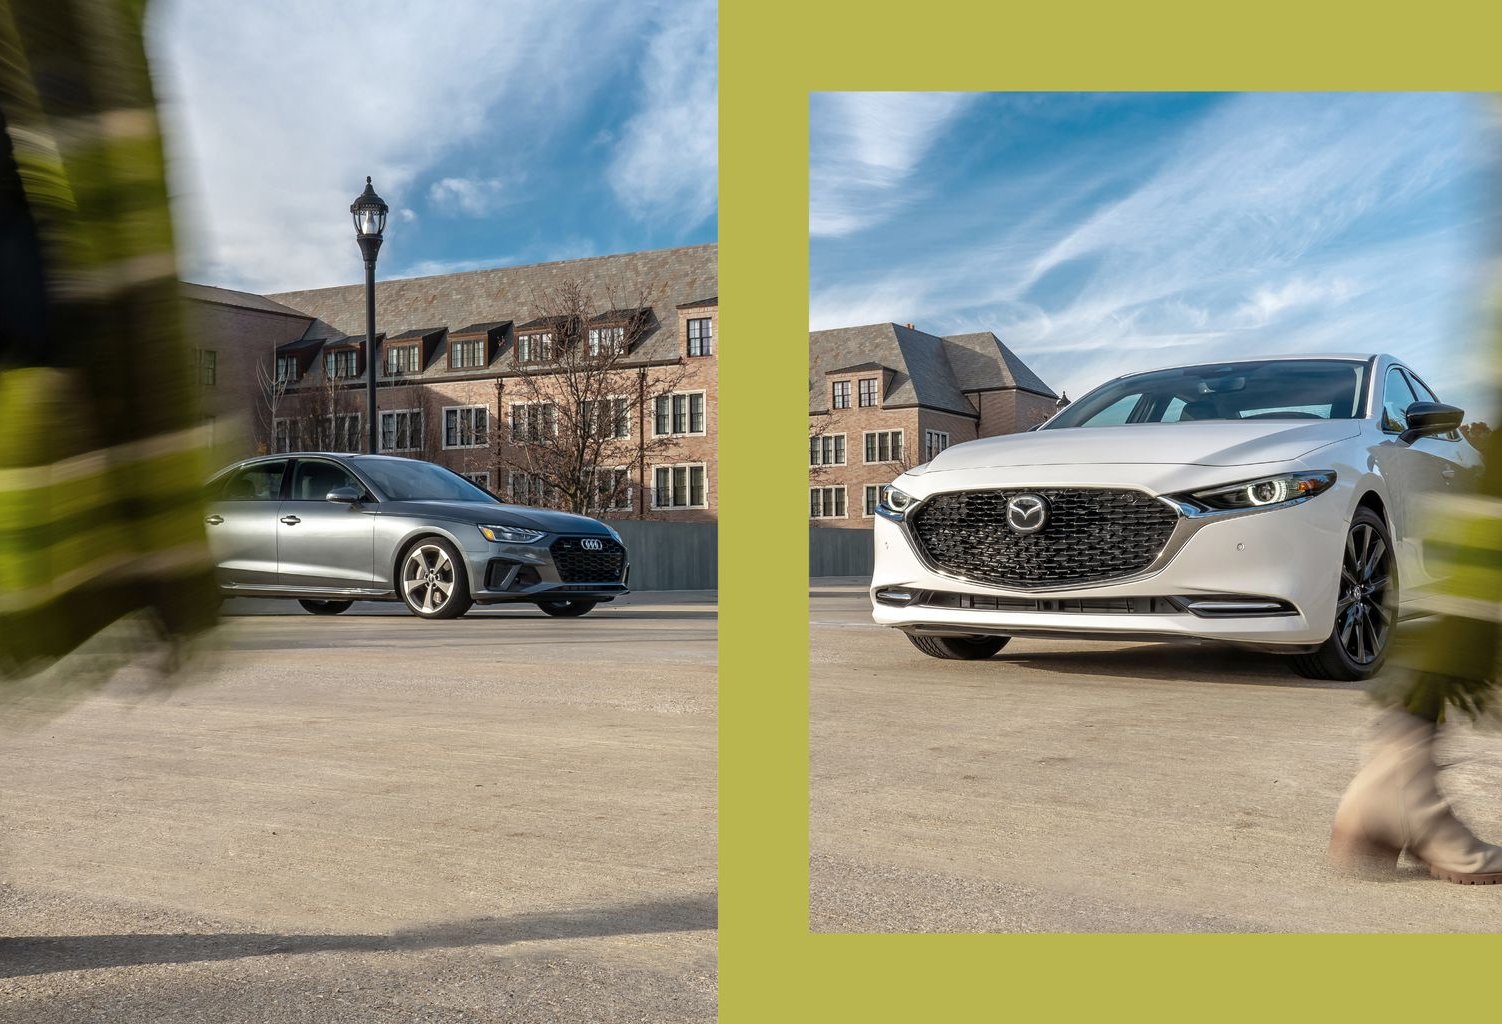 Tested: 2021 Mazda 3 2.5 Turbo vs. Audi A4 45